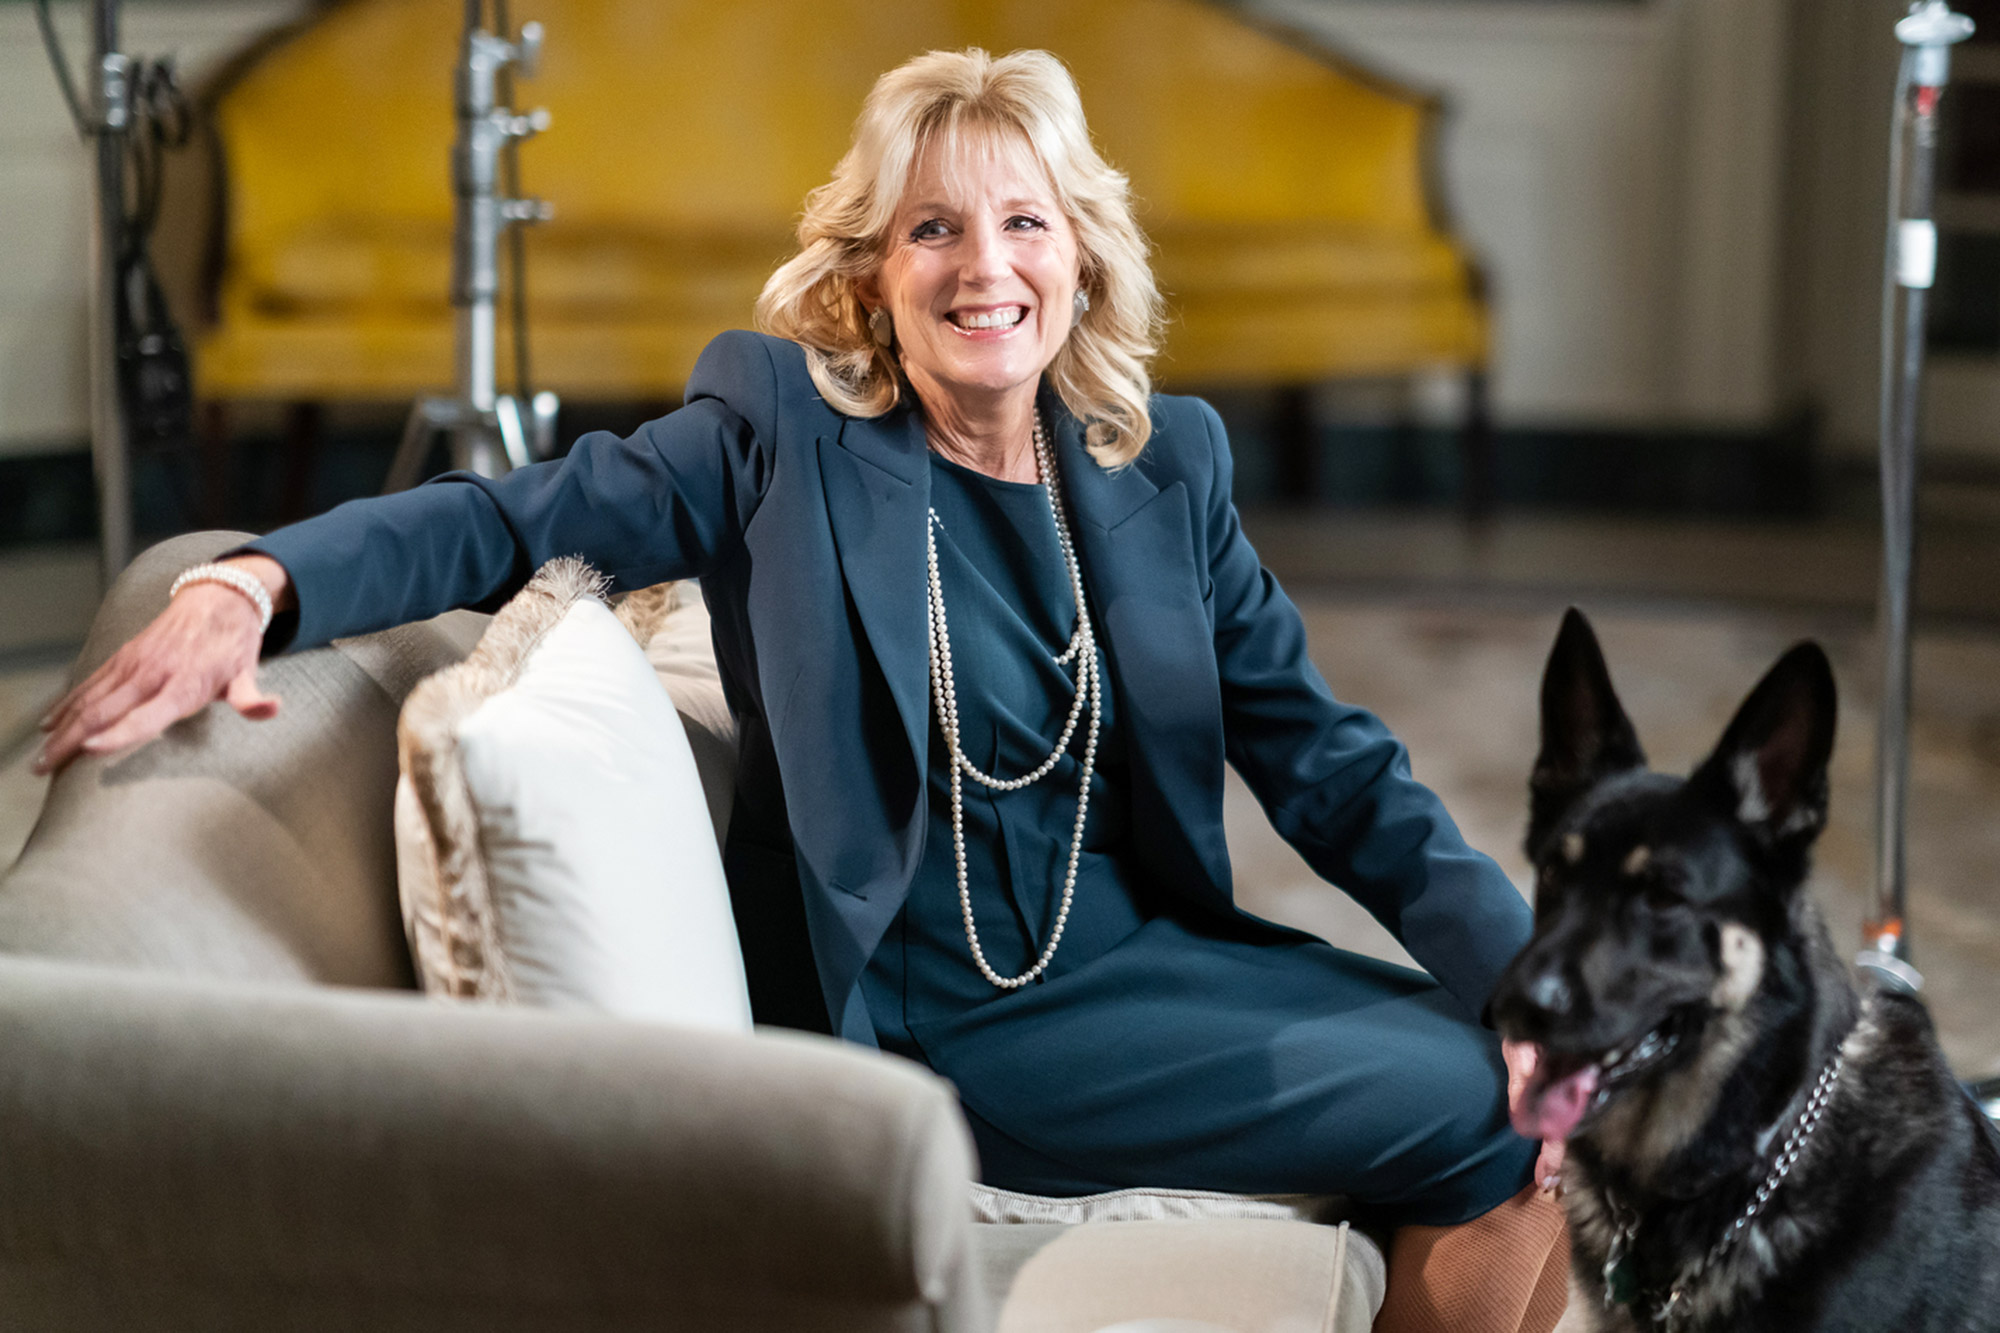 First Lady Dr. Jill Biden and the Biden family dog Major prepare to tape a video segment with President Joe Biden for Super Bowl LV Wednesday, Feb. 3, 2021, in the Diplomatic Reception Room of the White House.